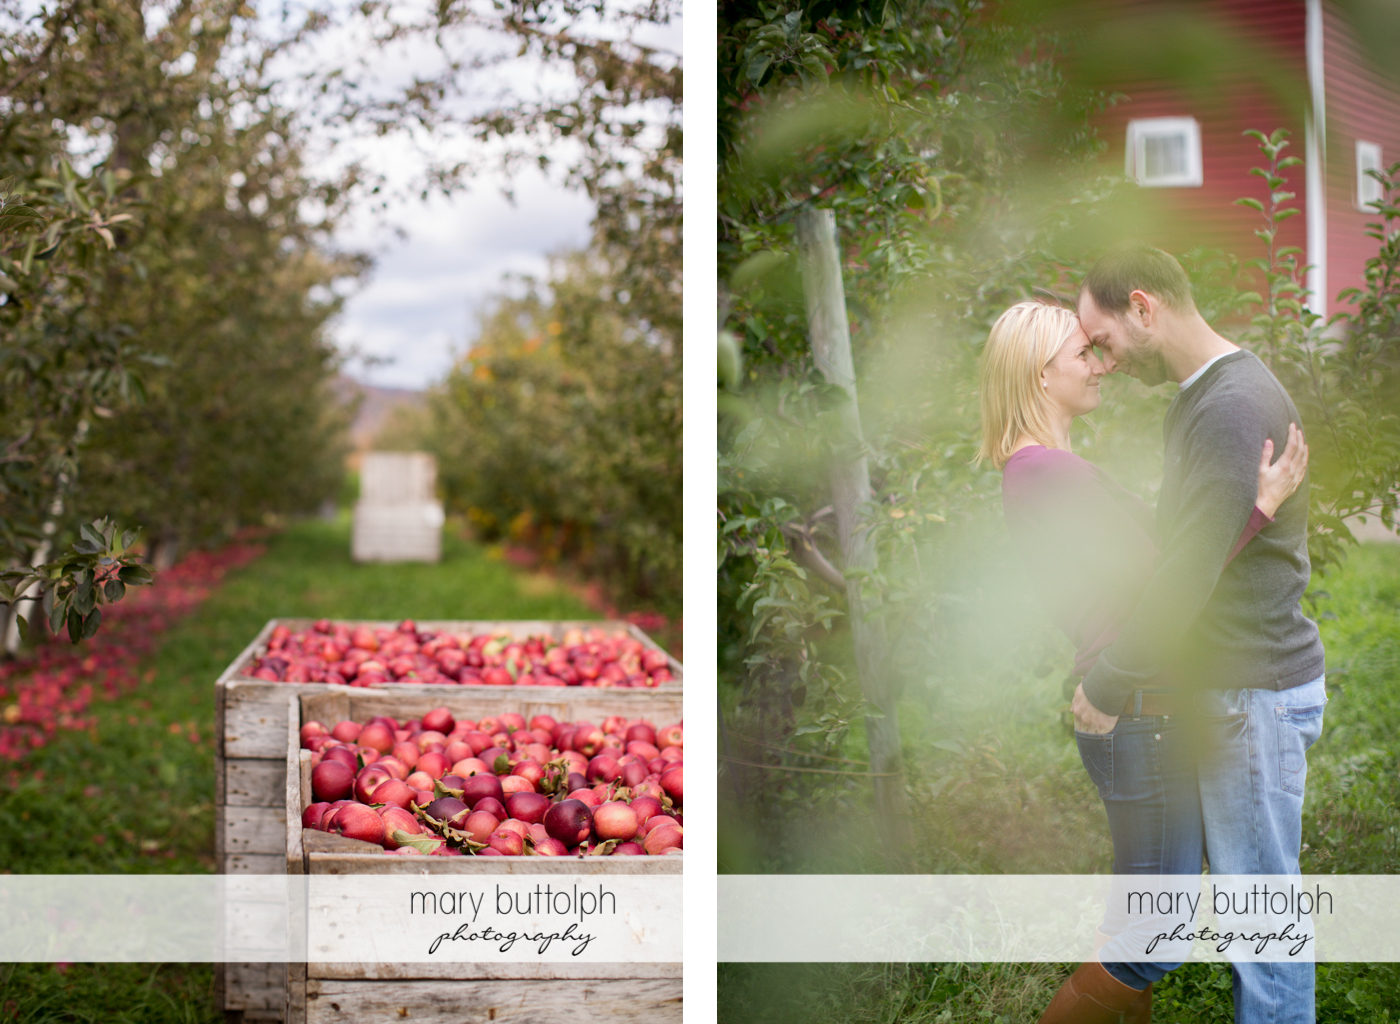 Apple crates in the garden while couple pose for the camera at Beak & Skiff Apple Orchards Engagement